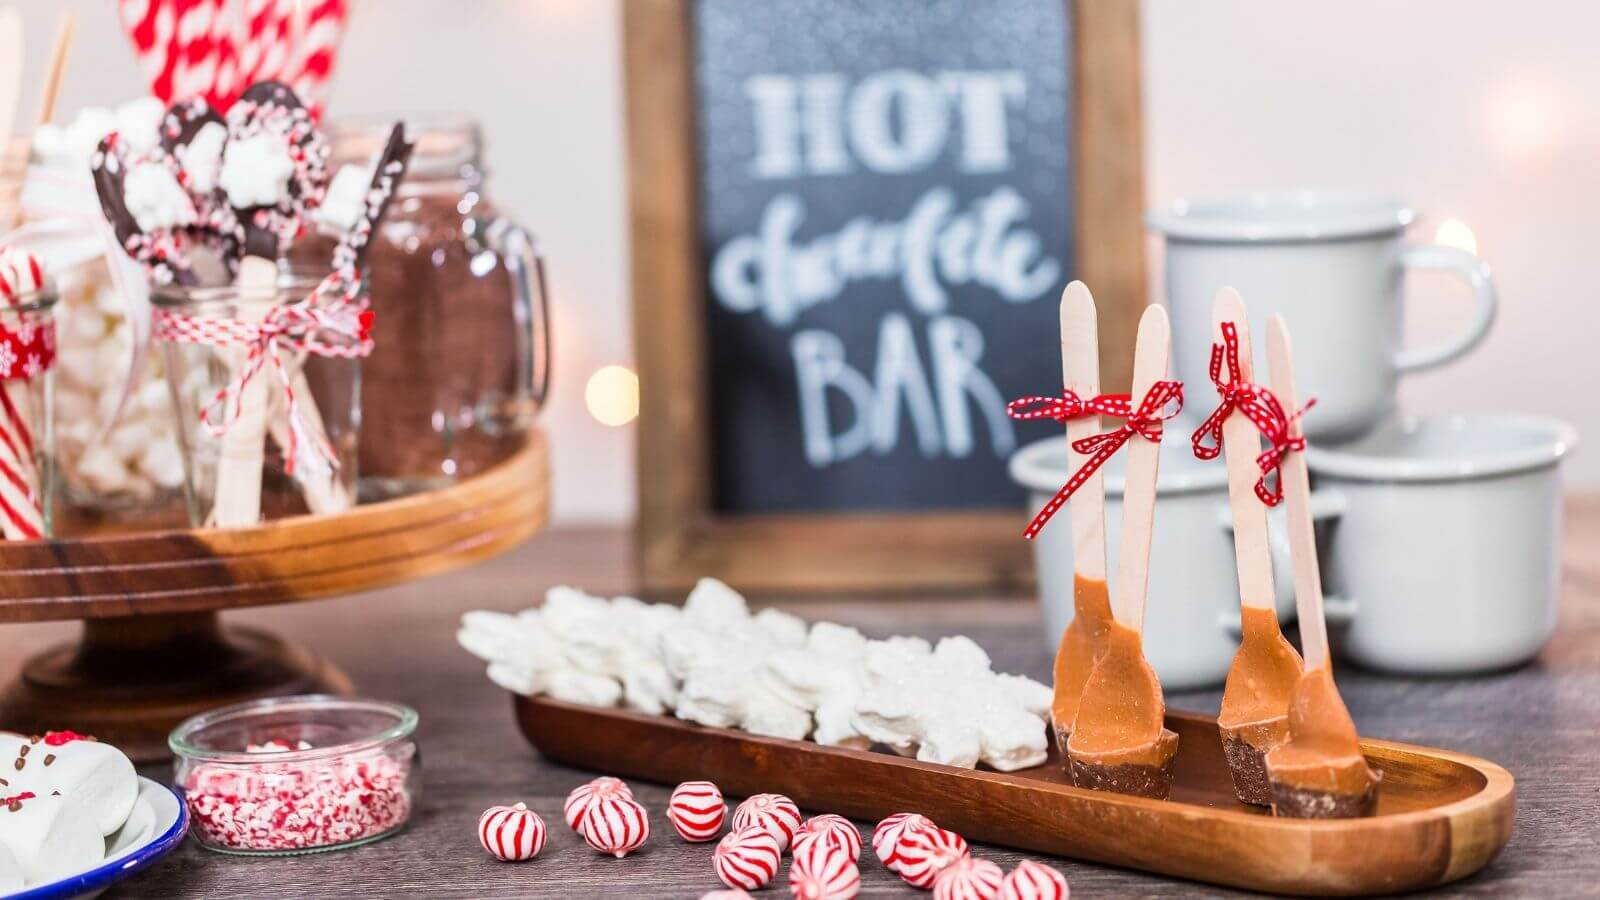 Hot Chocolate Station with selection of sweets, toppings, mugs and hot chocolate dipping sticks